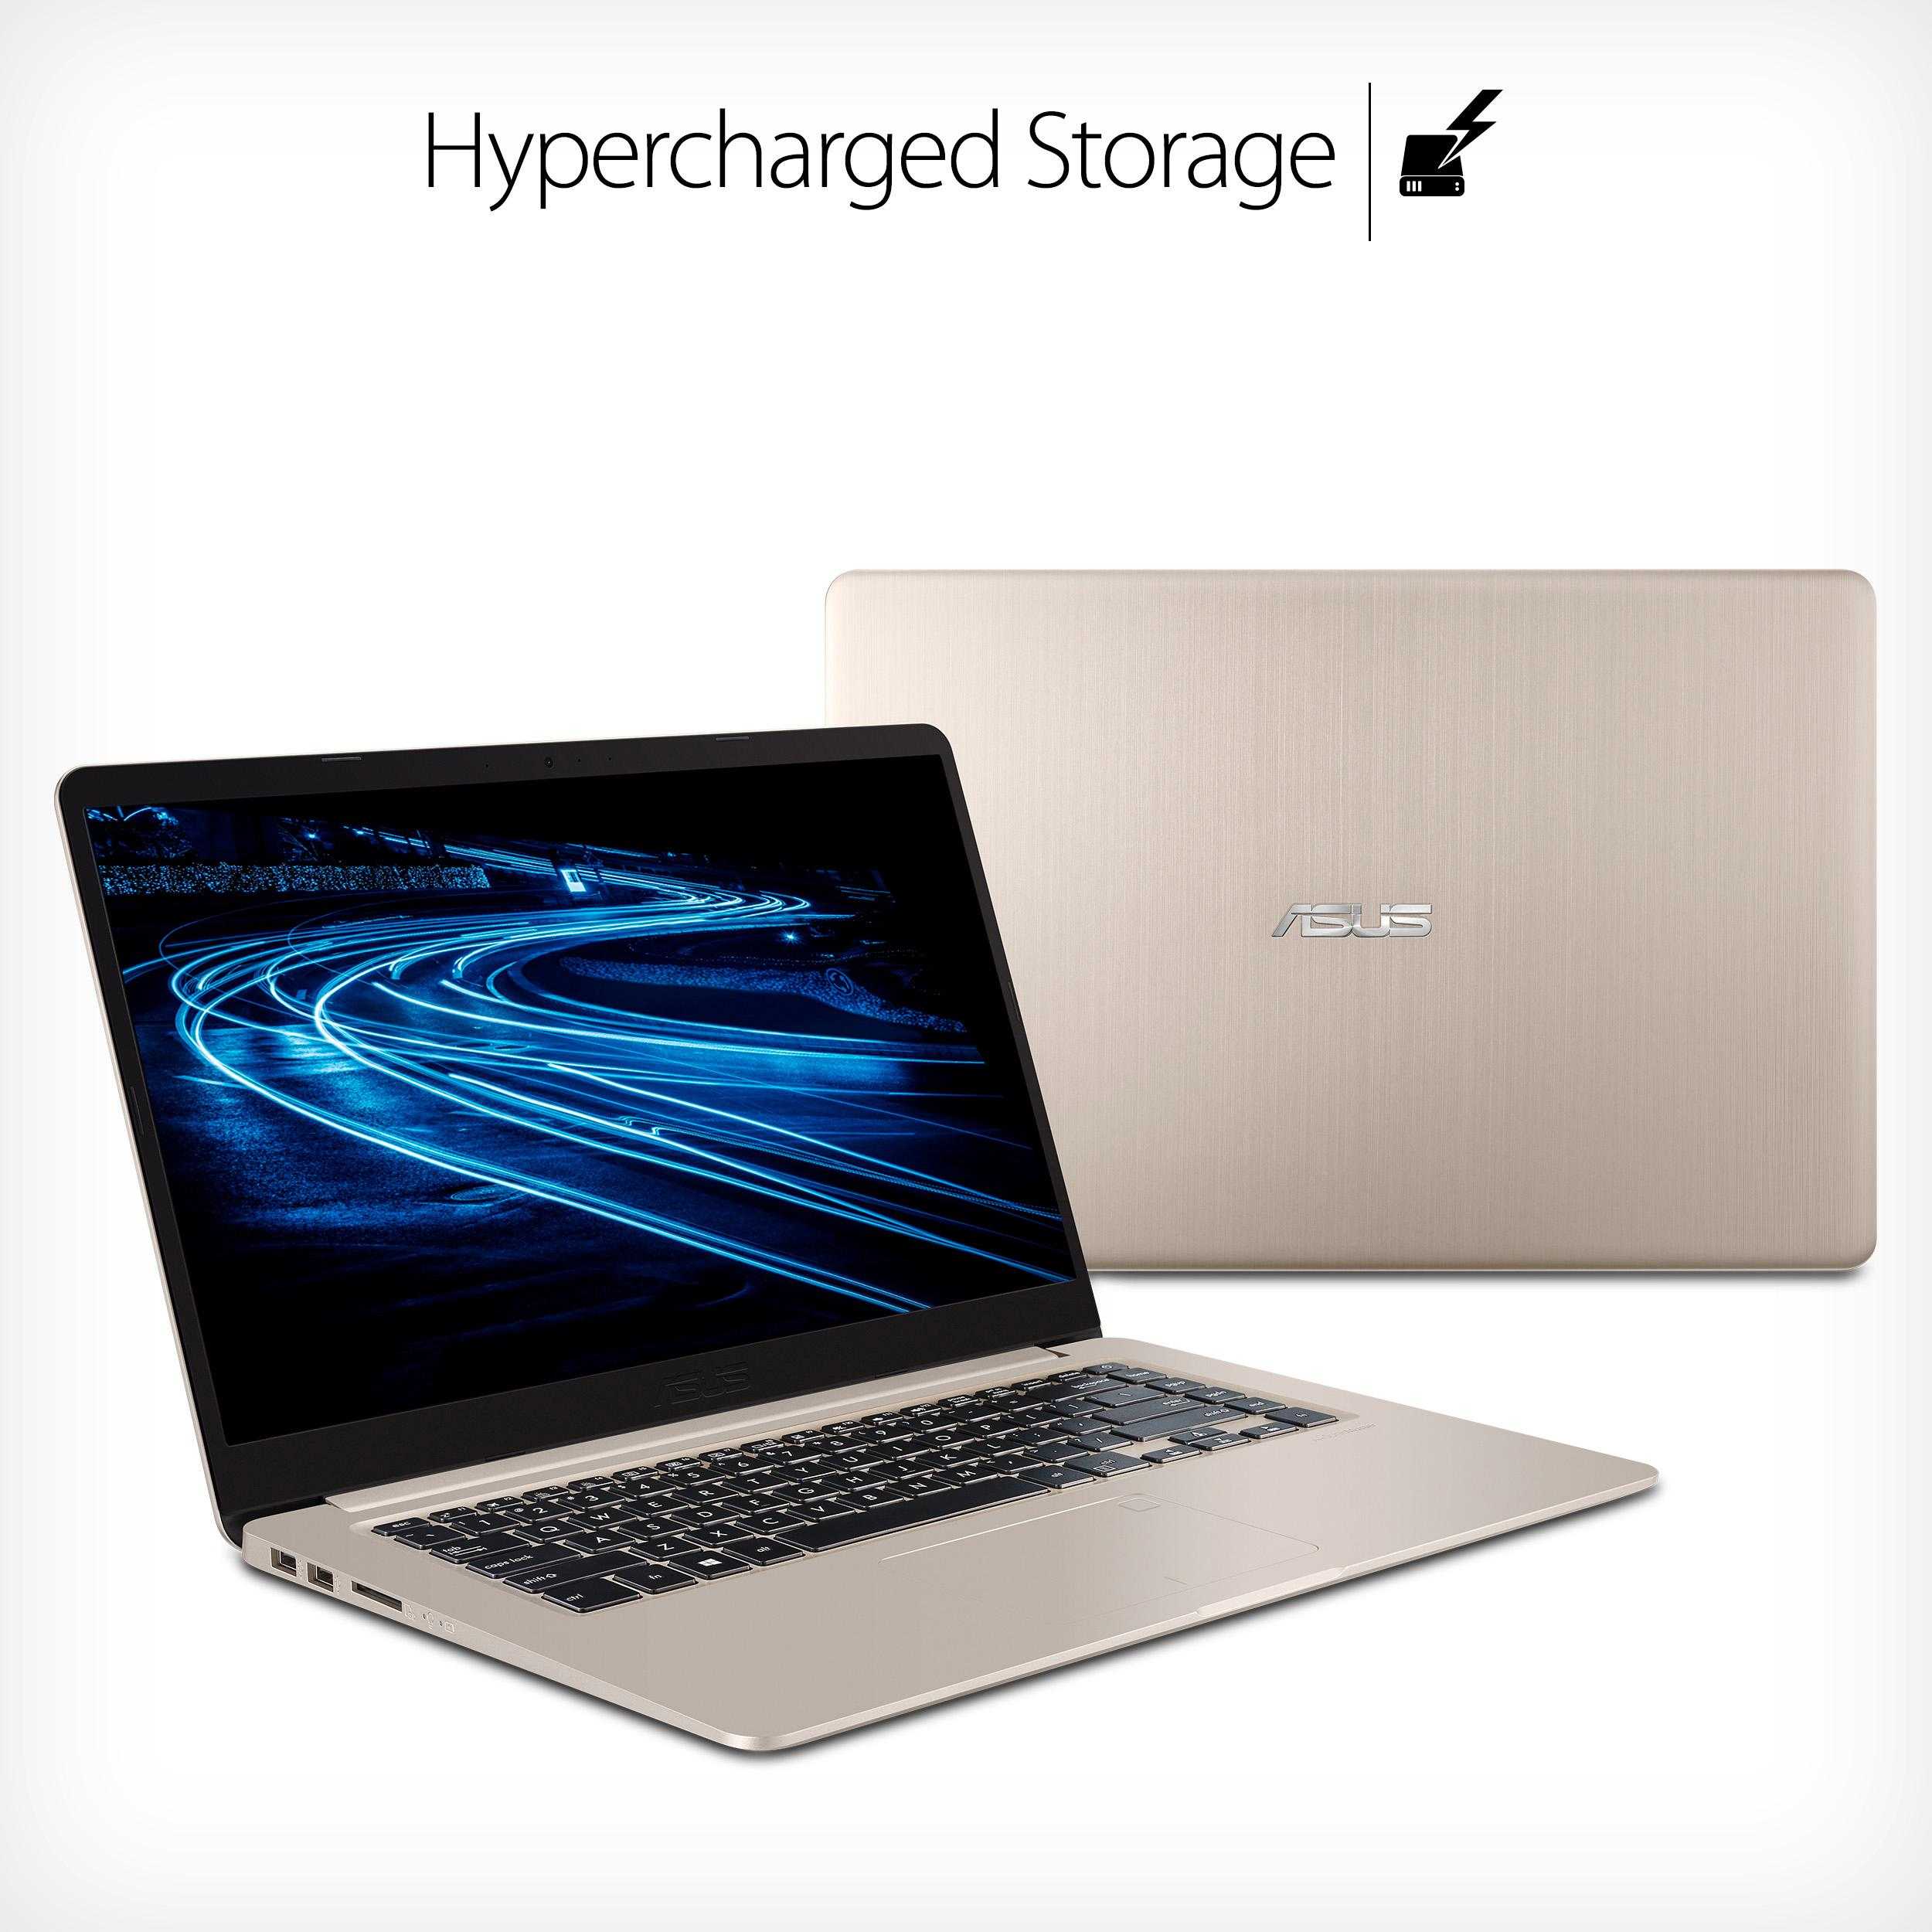 asus vivobook s ultra thin and portable laptop intel core i7 8550u processor 8gb. Black Bedroom Furniture Sets. Home Design Ideas